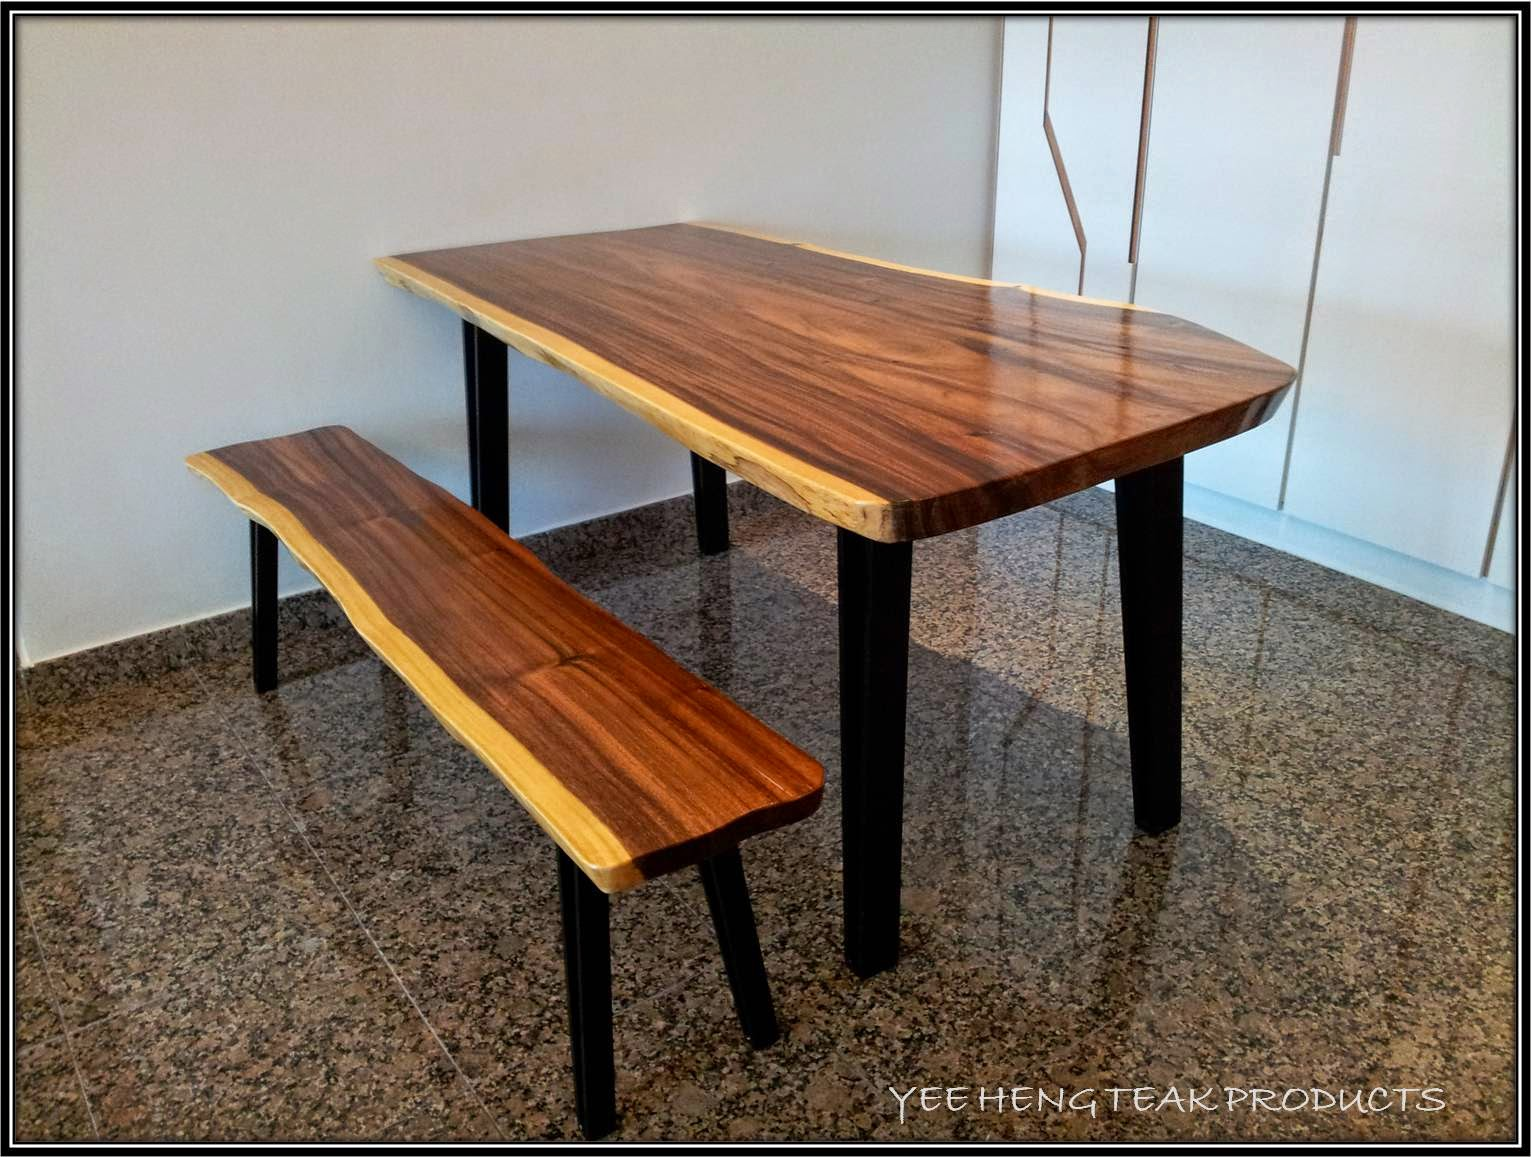 Yee Heng Teak Products